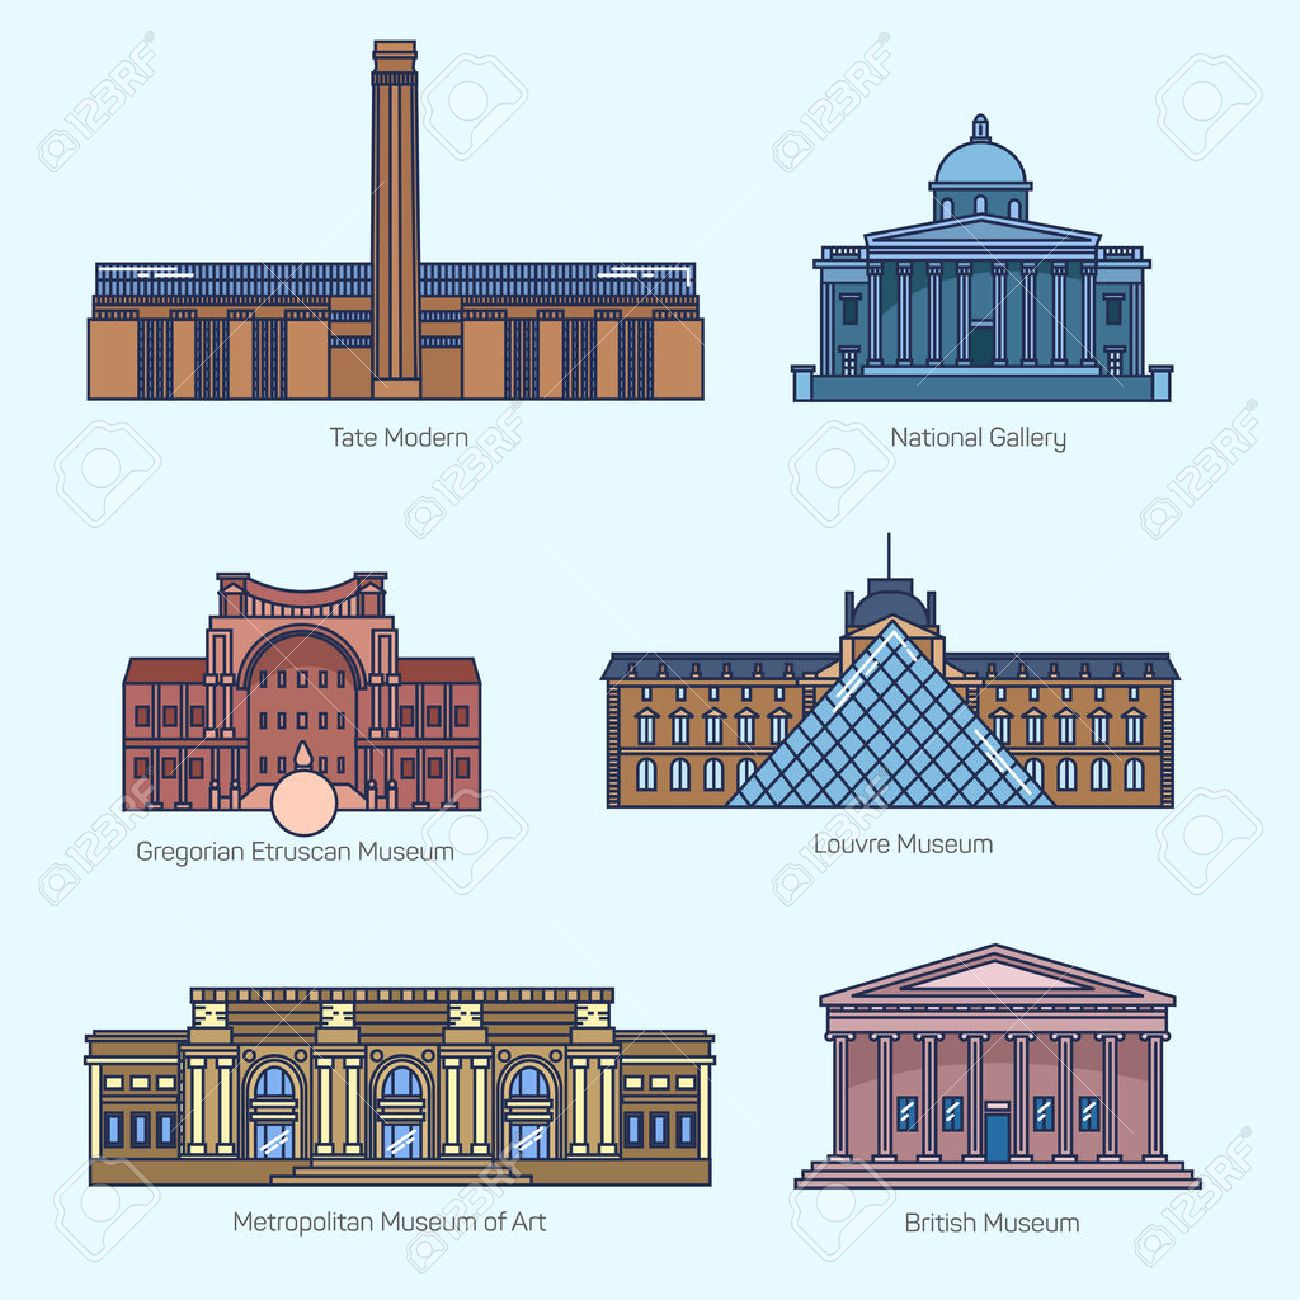 24 972 museum cliparts stock vector and royalty free museum museum monuments thin line vector icons tate modern national gallery gregorian etruscan